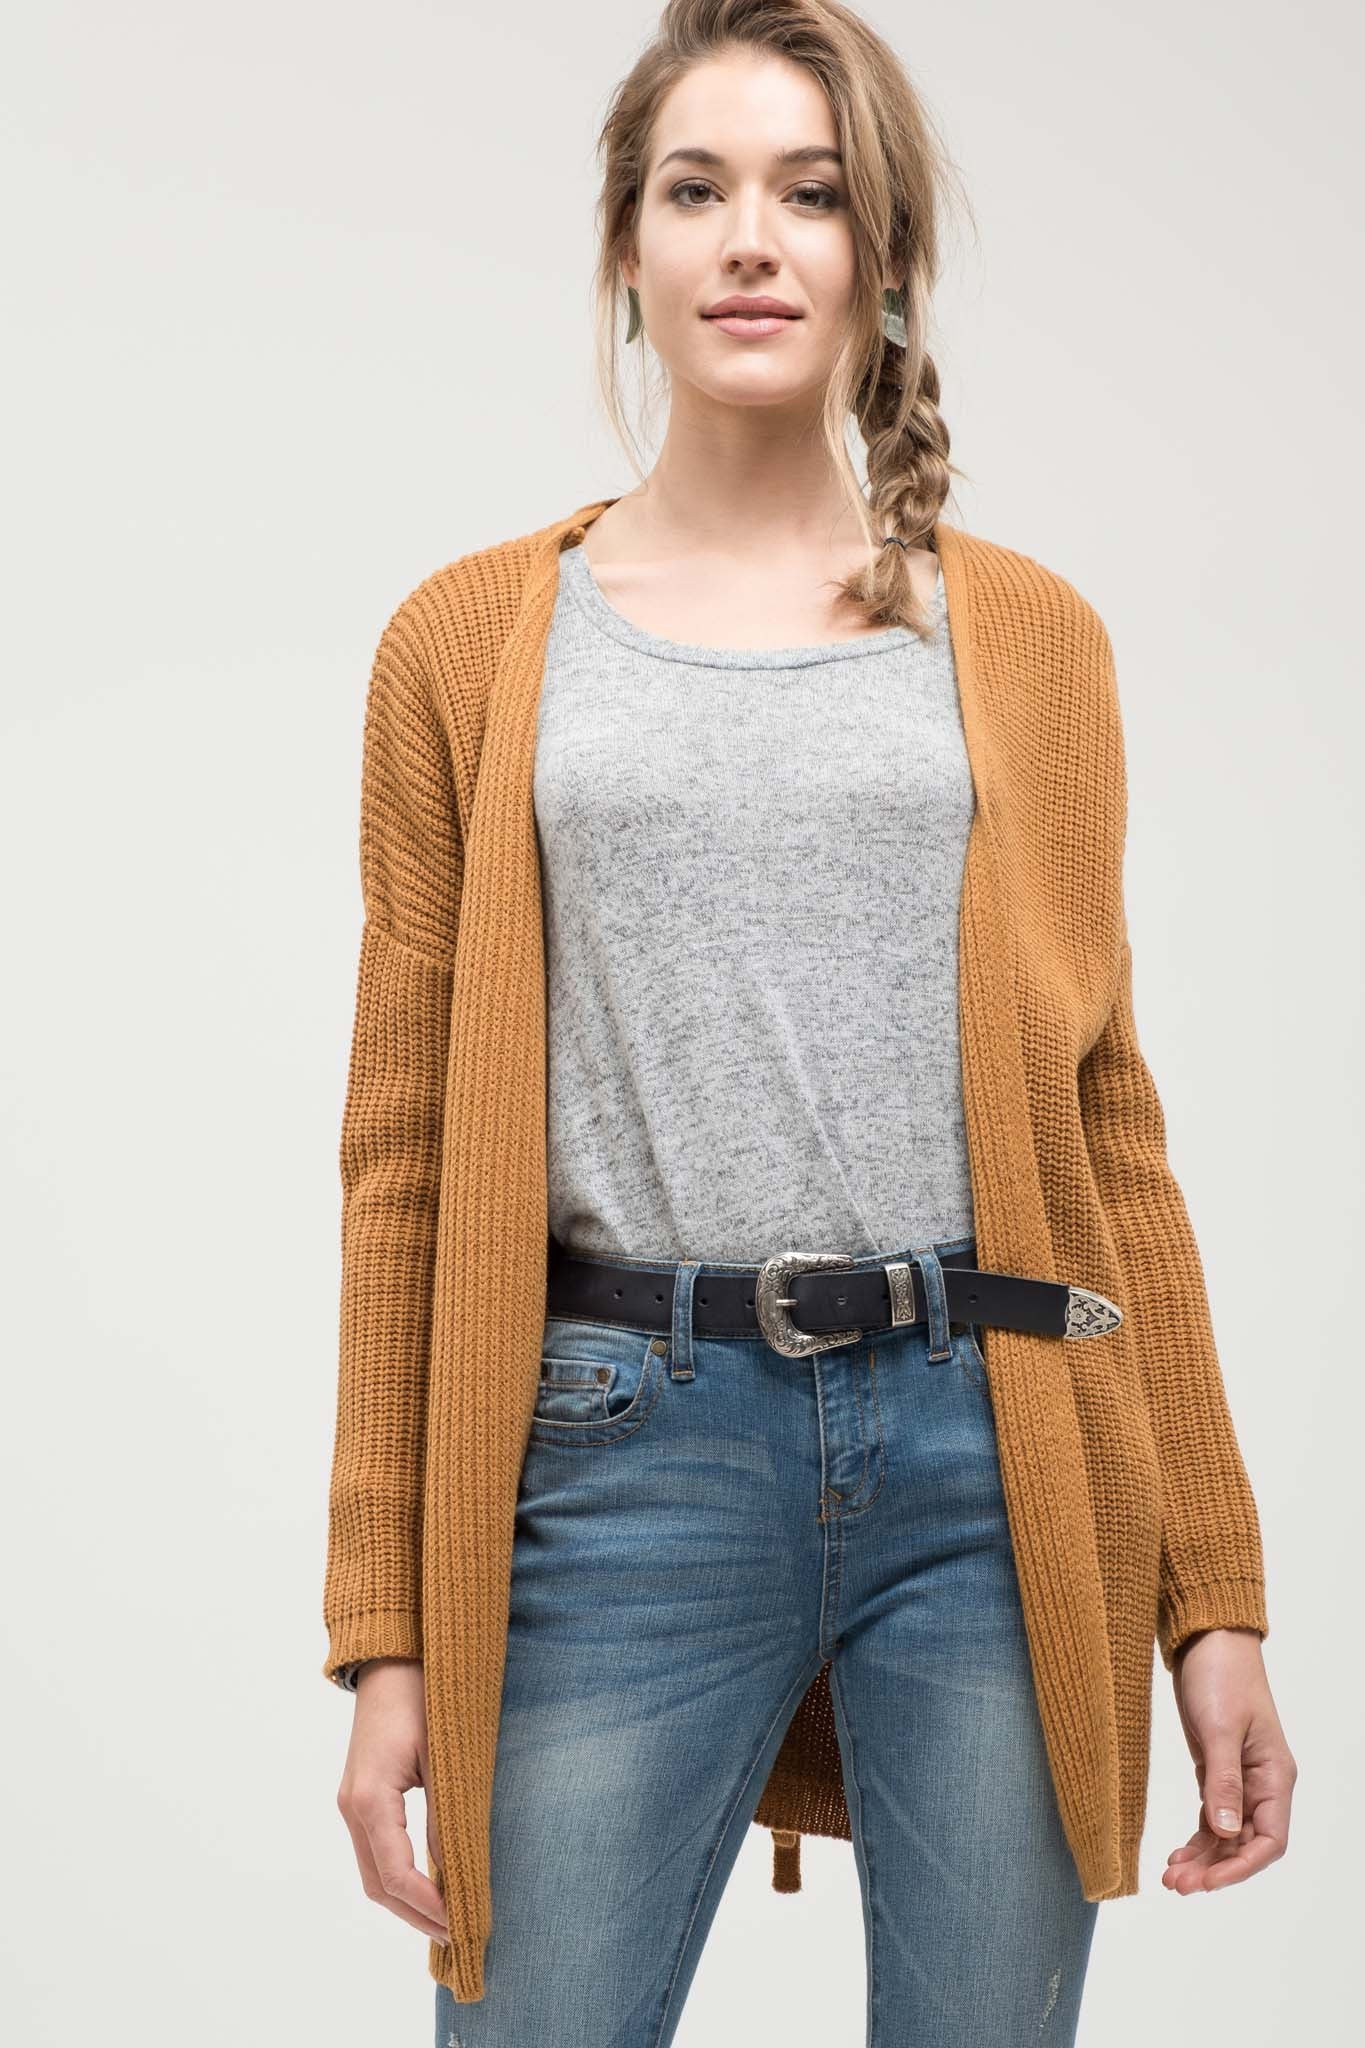 The Endless Summer Chunky Knit Mustard Cardigan features a cute lace up detail on the back.